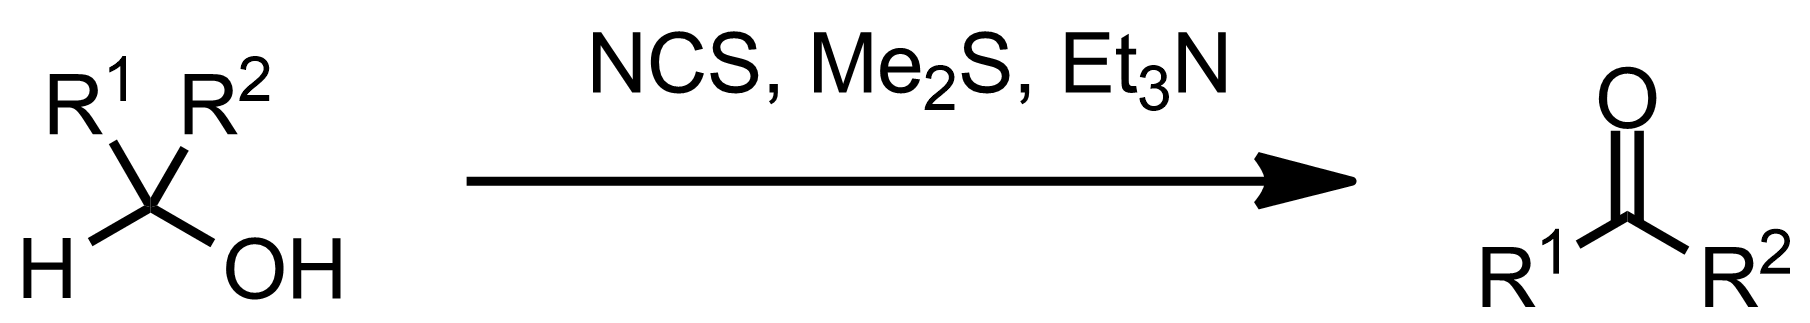 Schematic representation of the Corey-Kim Oxidation.